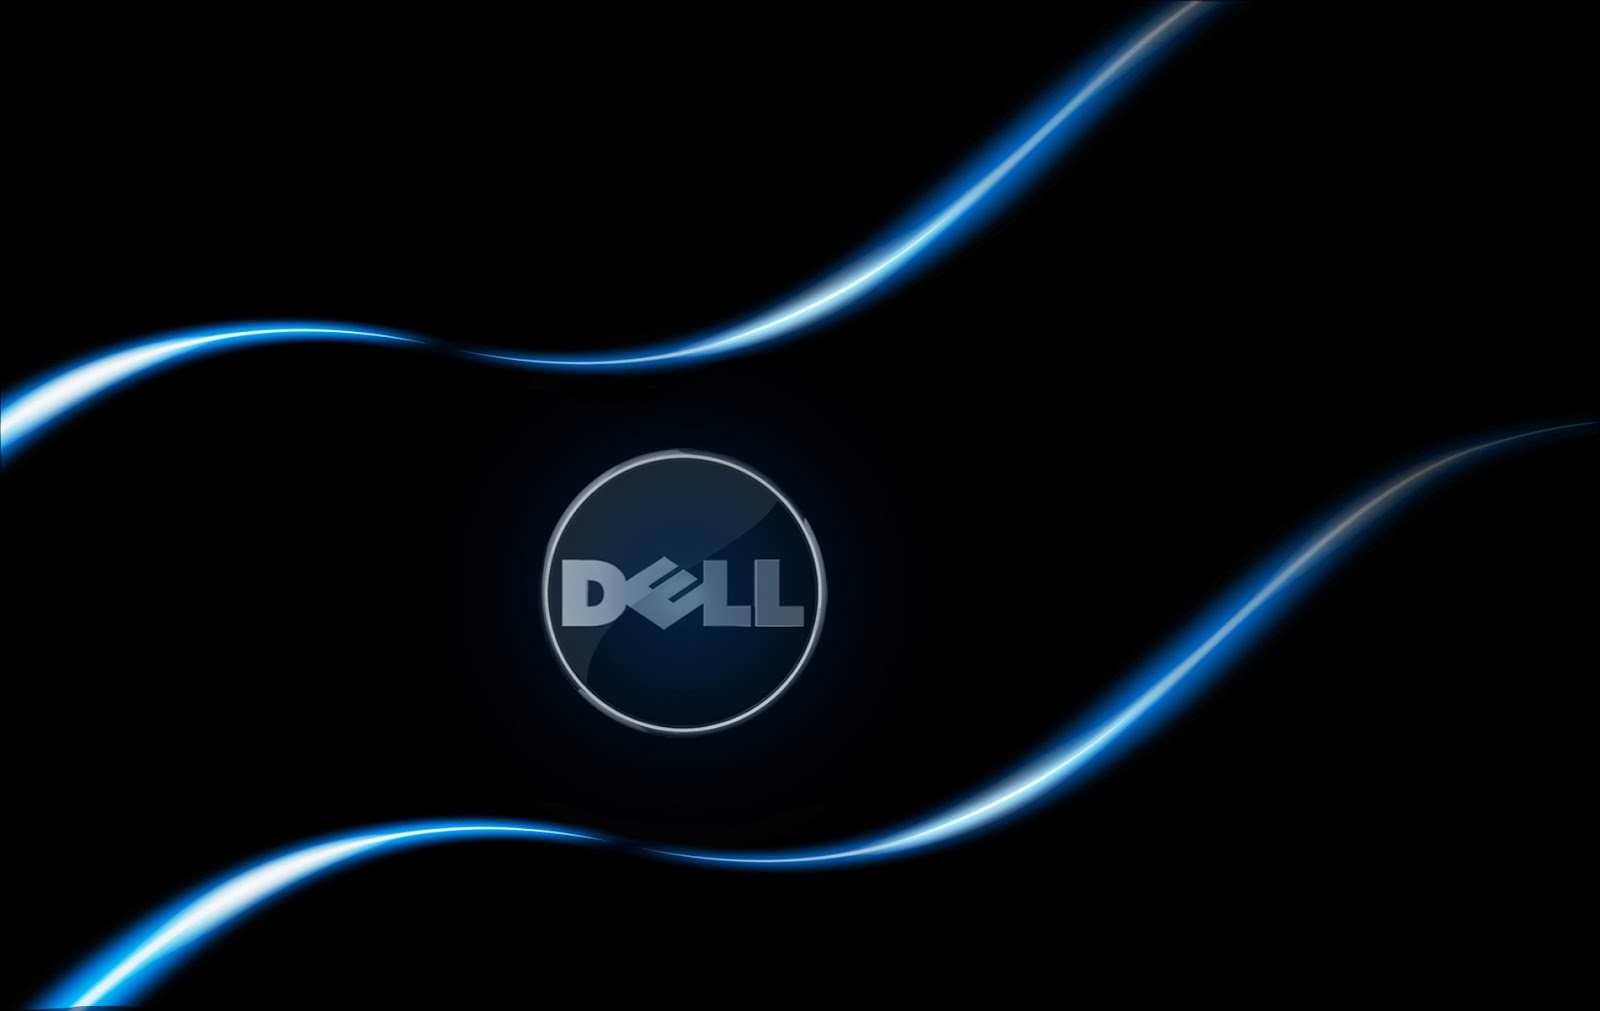 Free download HD WALLPAPERS HD Wallpapers For Dell Laptop ...